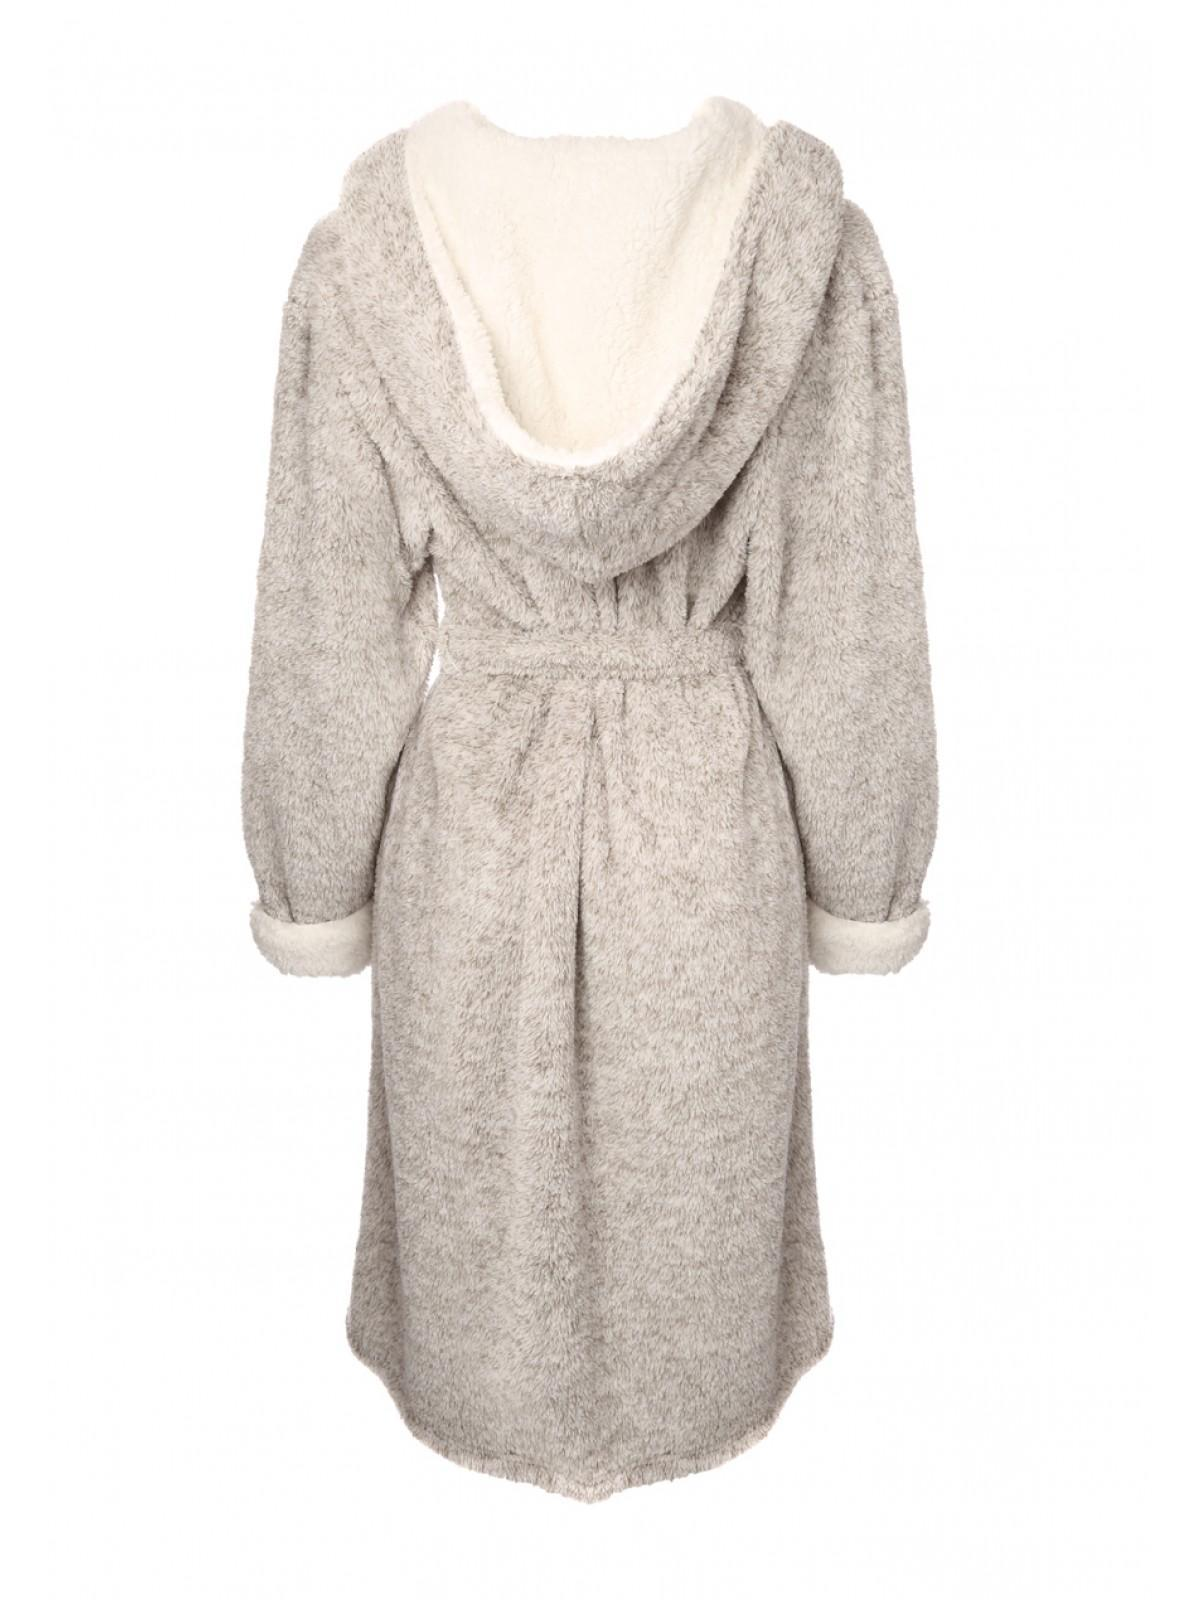 Amazing Hooded Dressing Gown Women Images - Images for wedding gown ...